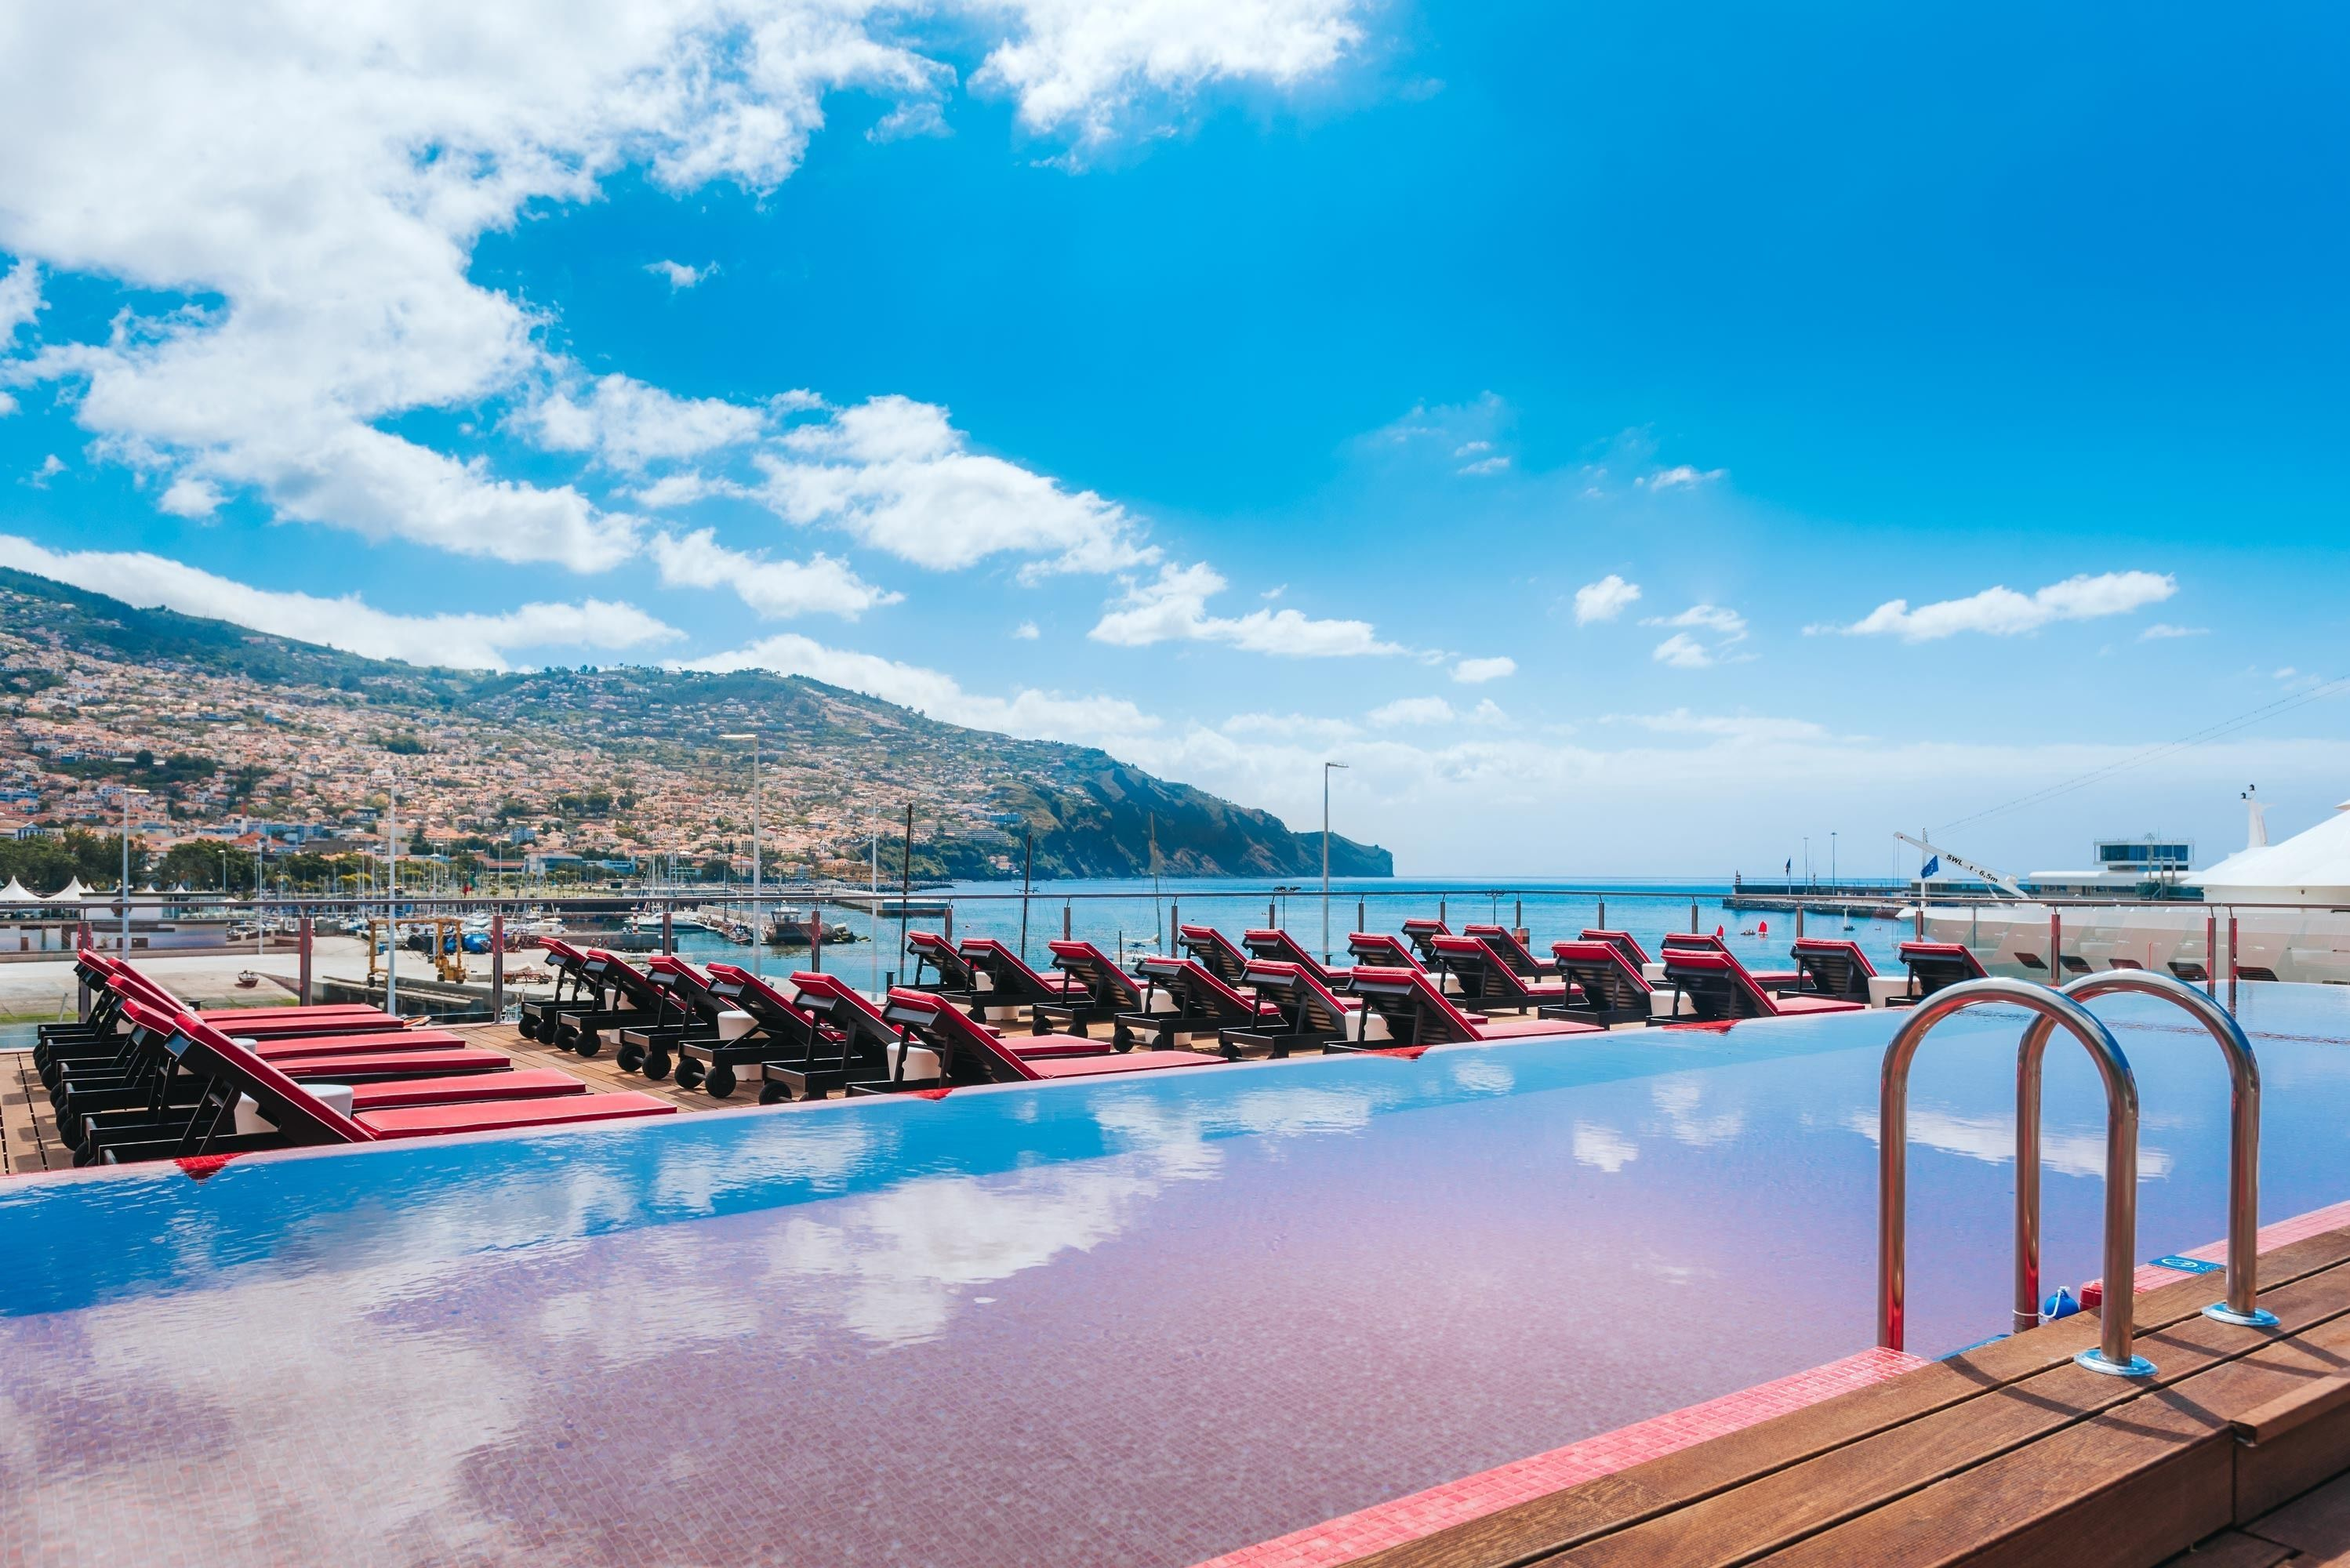 Pestana Cr7 Funchal Funchal Hotelbewertungen 2021 Expedia At